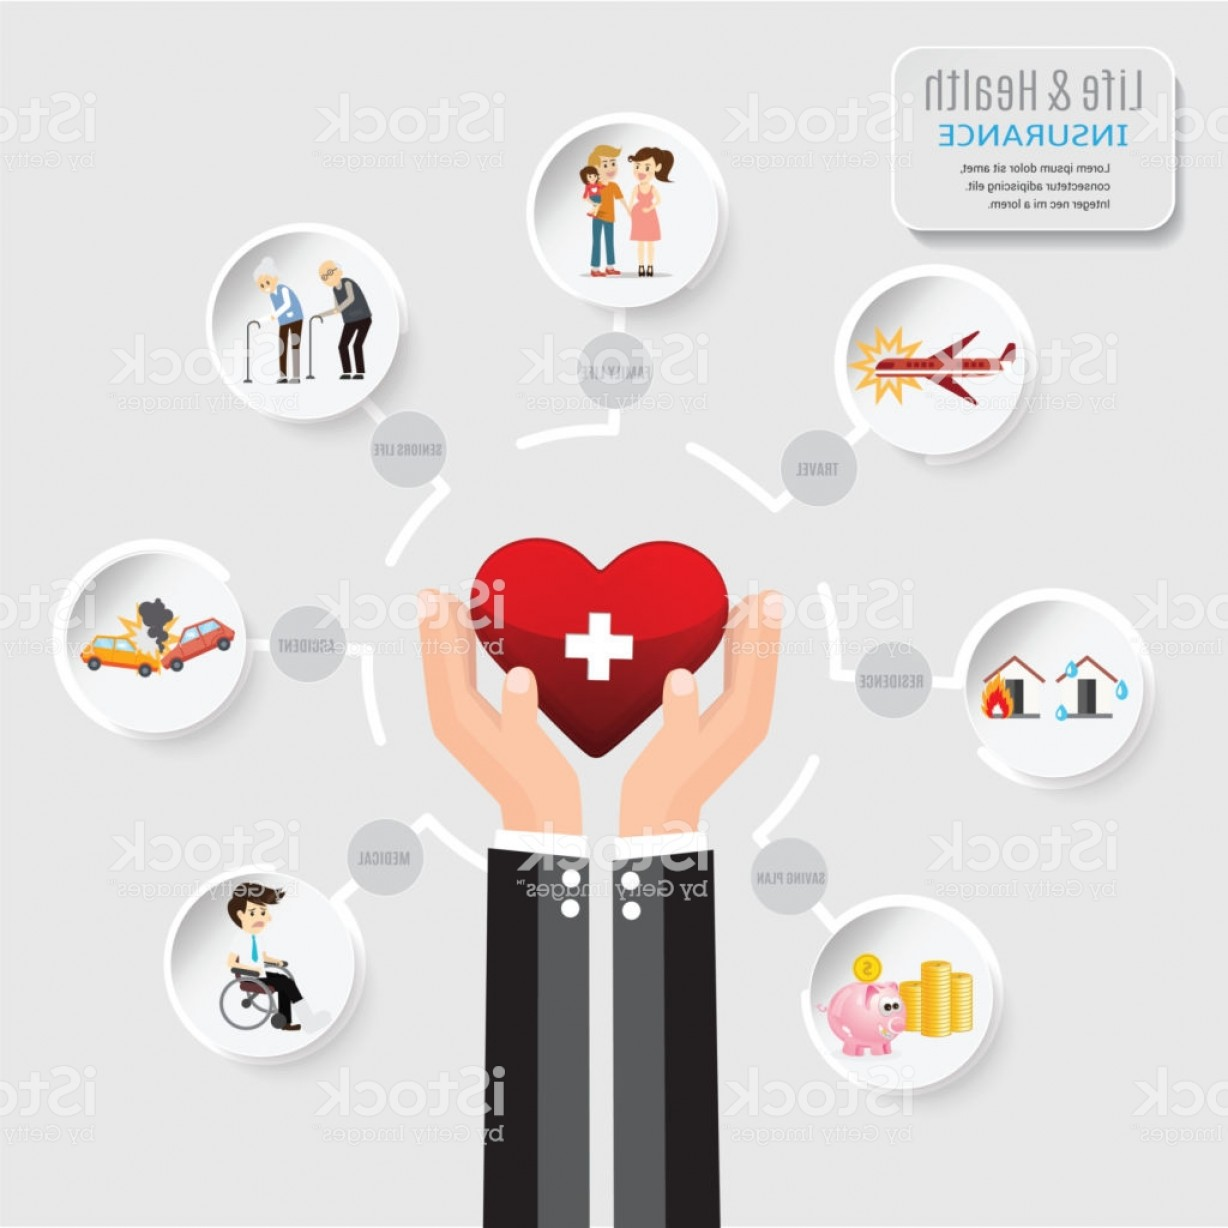 Vector Health Insurance: Health Insurance Service Care And Protect You Life Hand Business Agent Holding Heart Gm